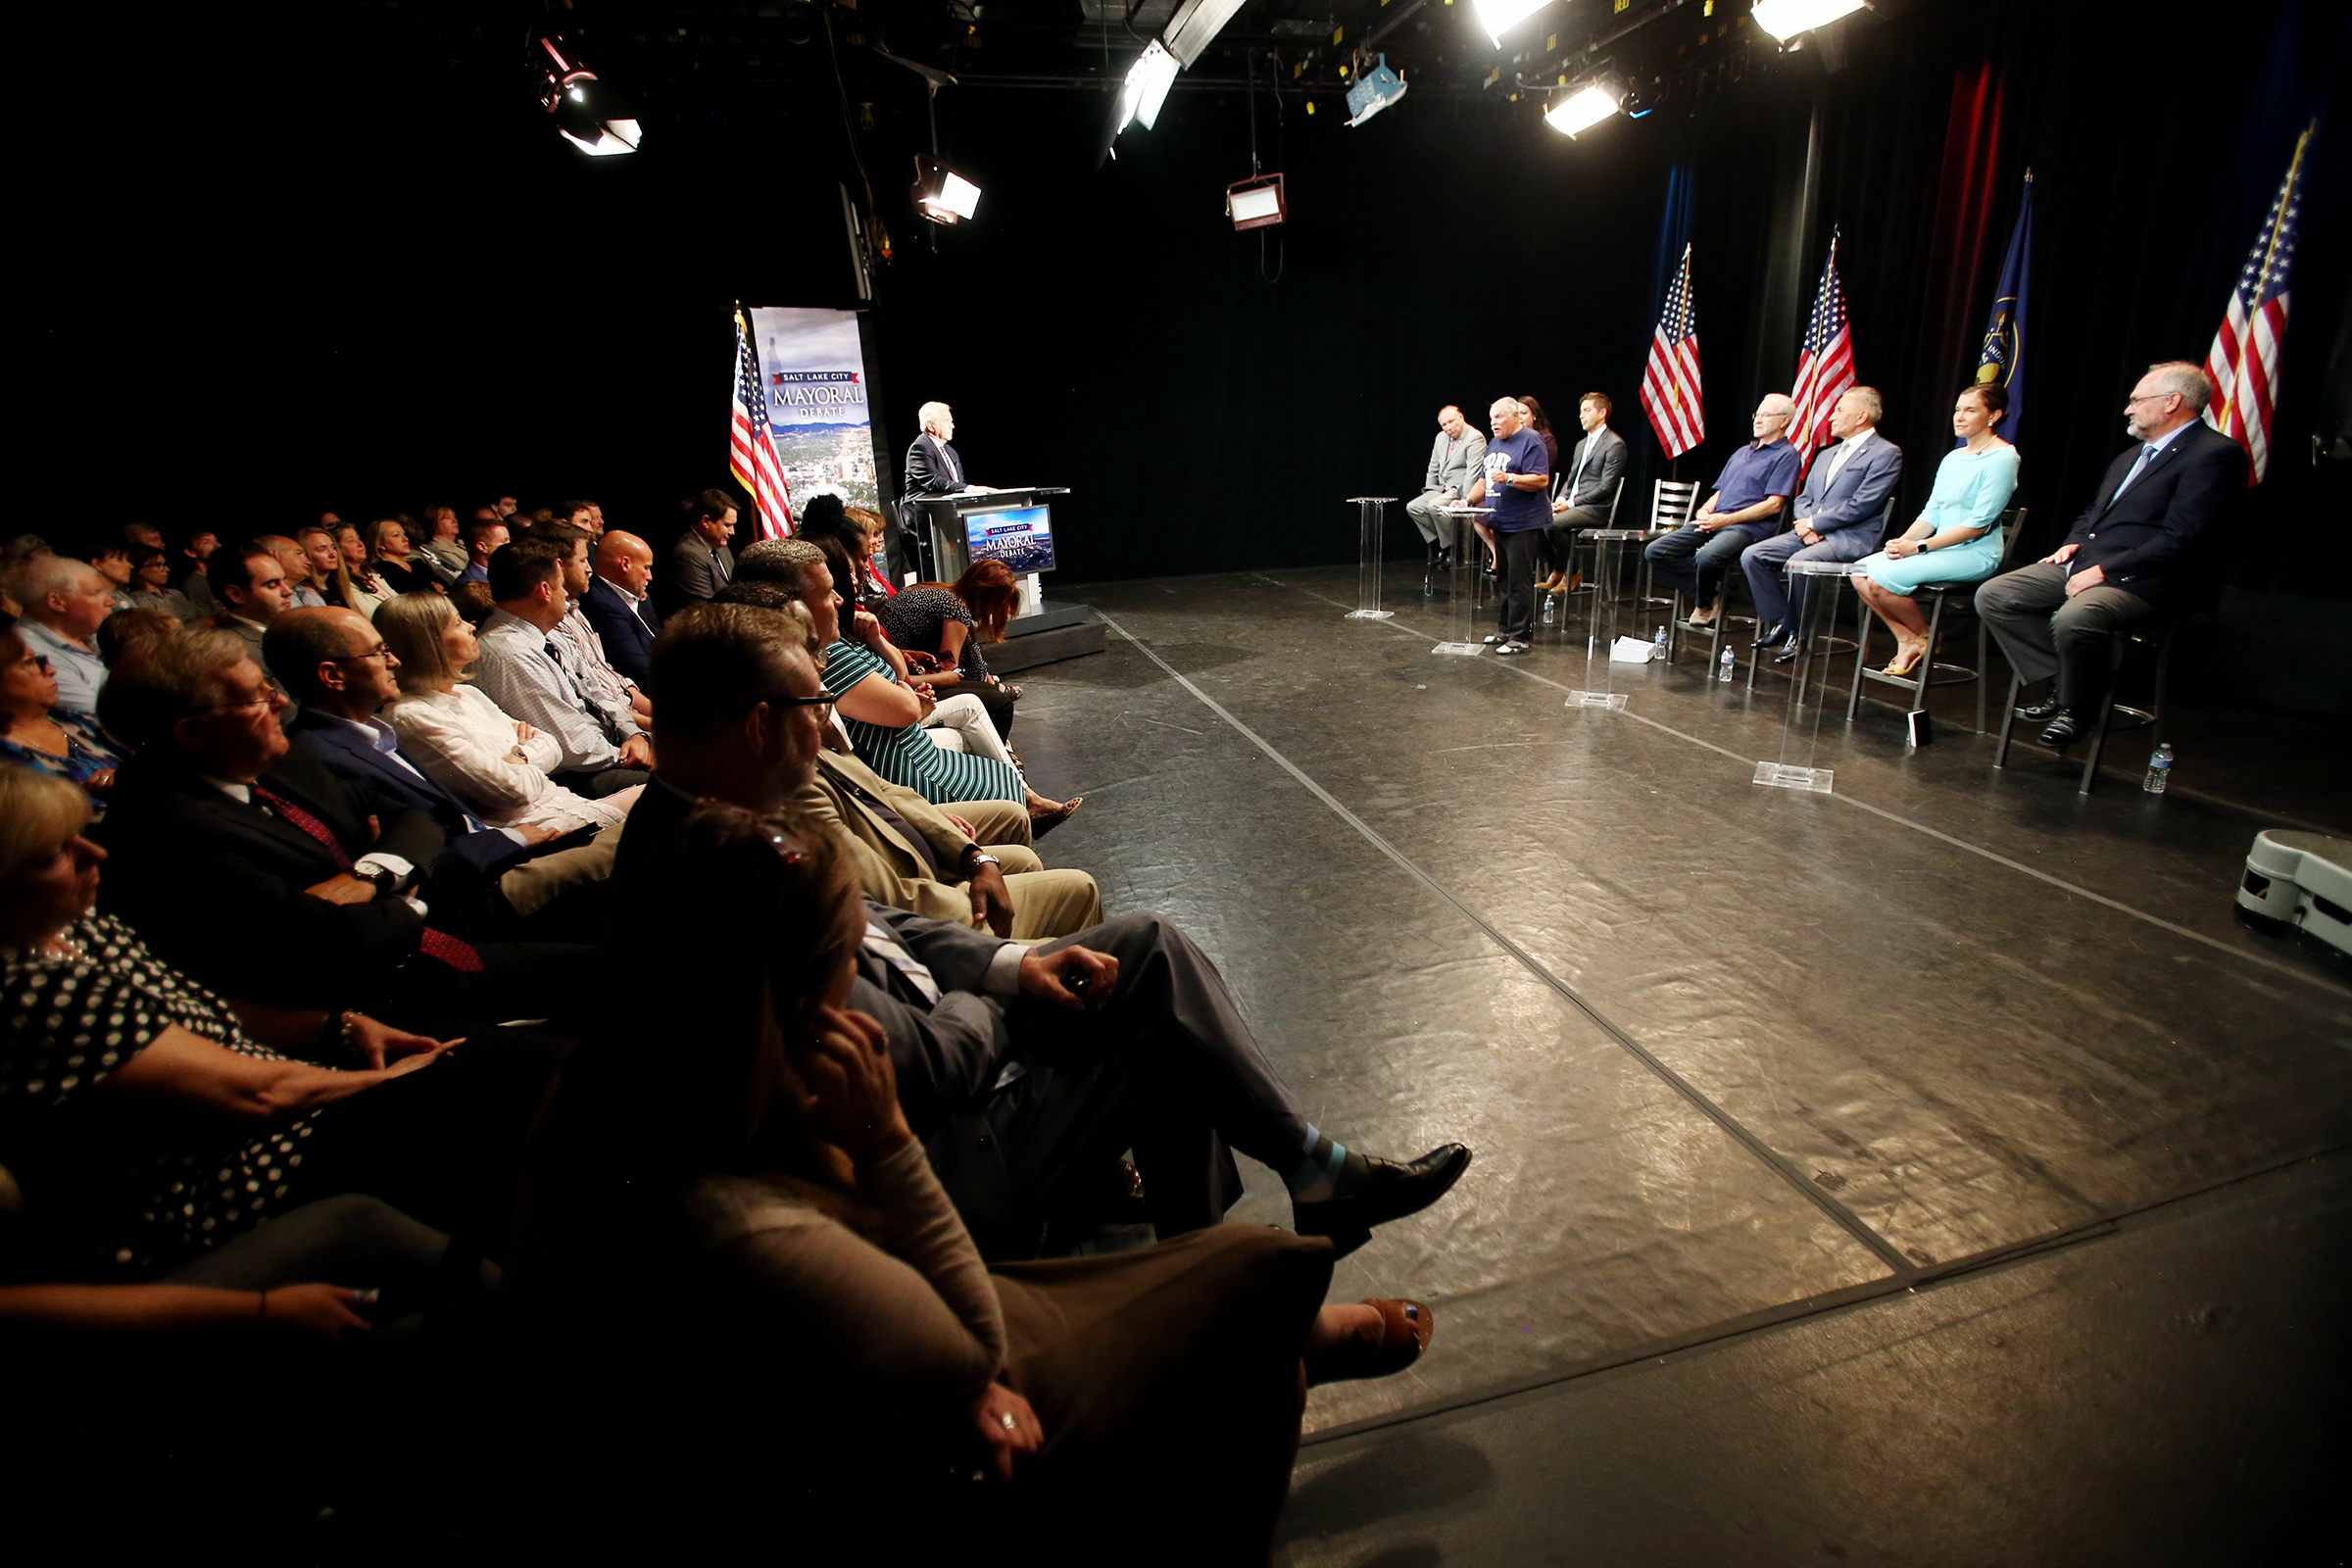 Audience members watch as Salt Lake City mayoral candidates debate from the KSL-TV studios in Salt Lake City on Monday, July 15, 2019.